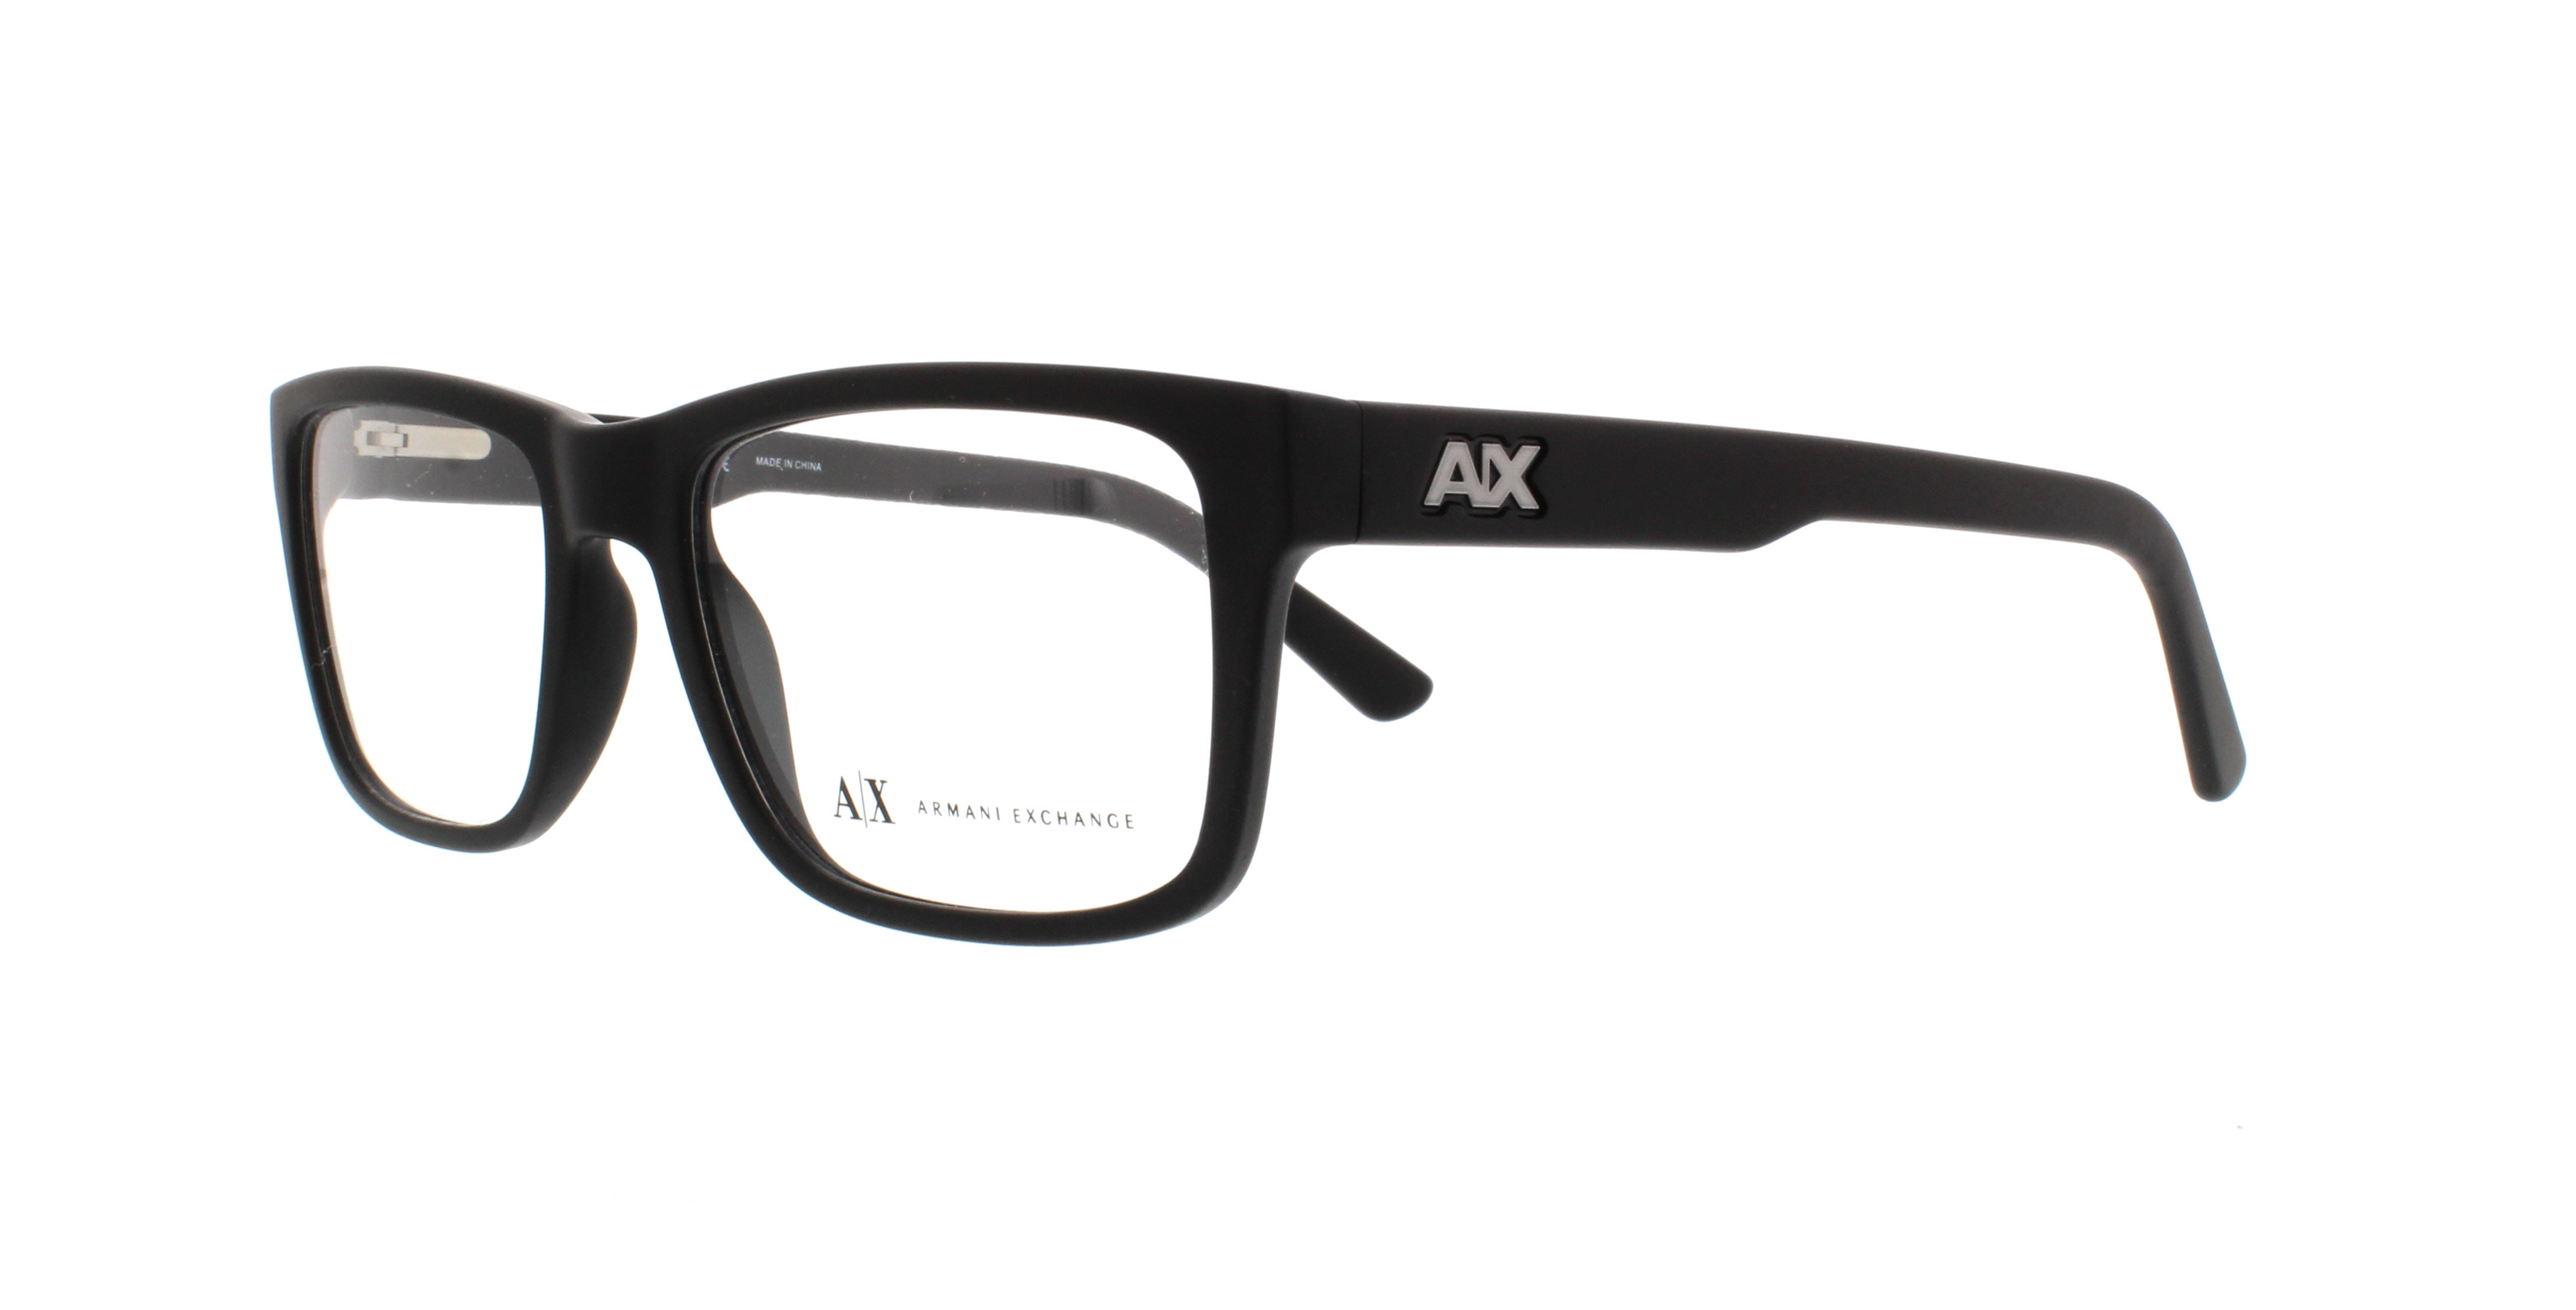 Designer Frames Outlet. Armani Exchange AX3016